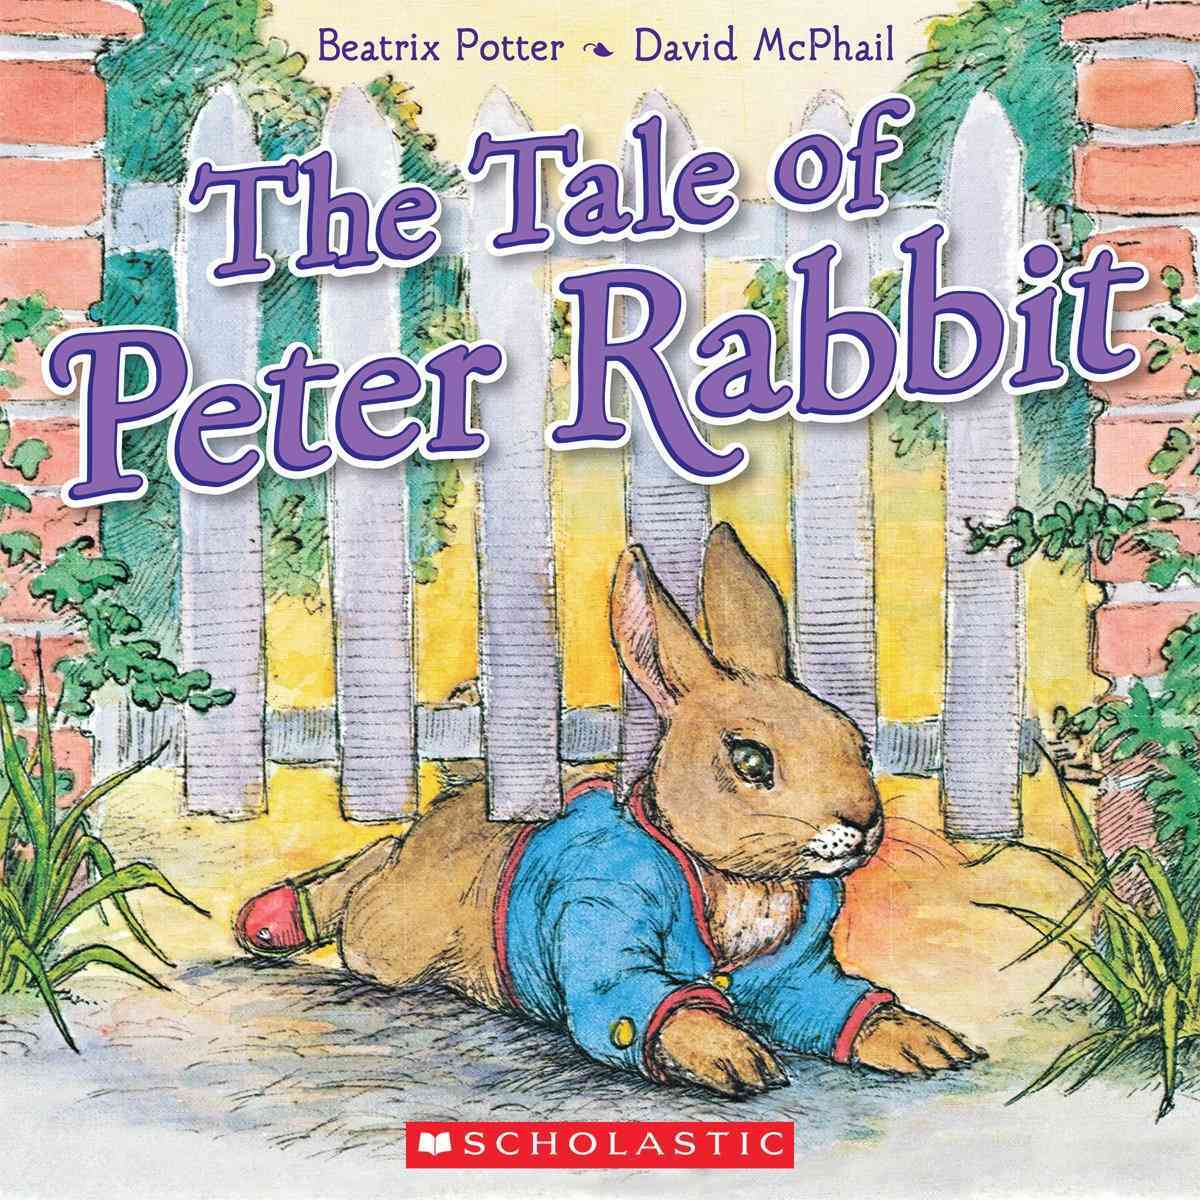 The Tale of Peter Rabbit By Potter, Beatrix/ McPhail, David (ILT)